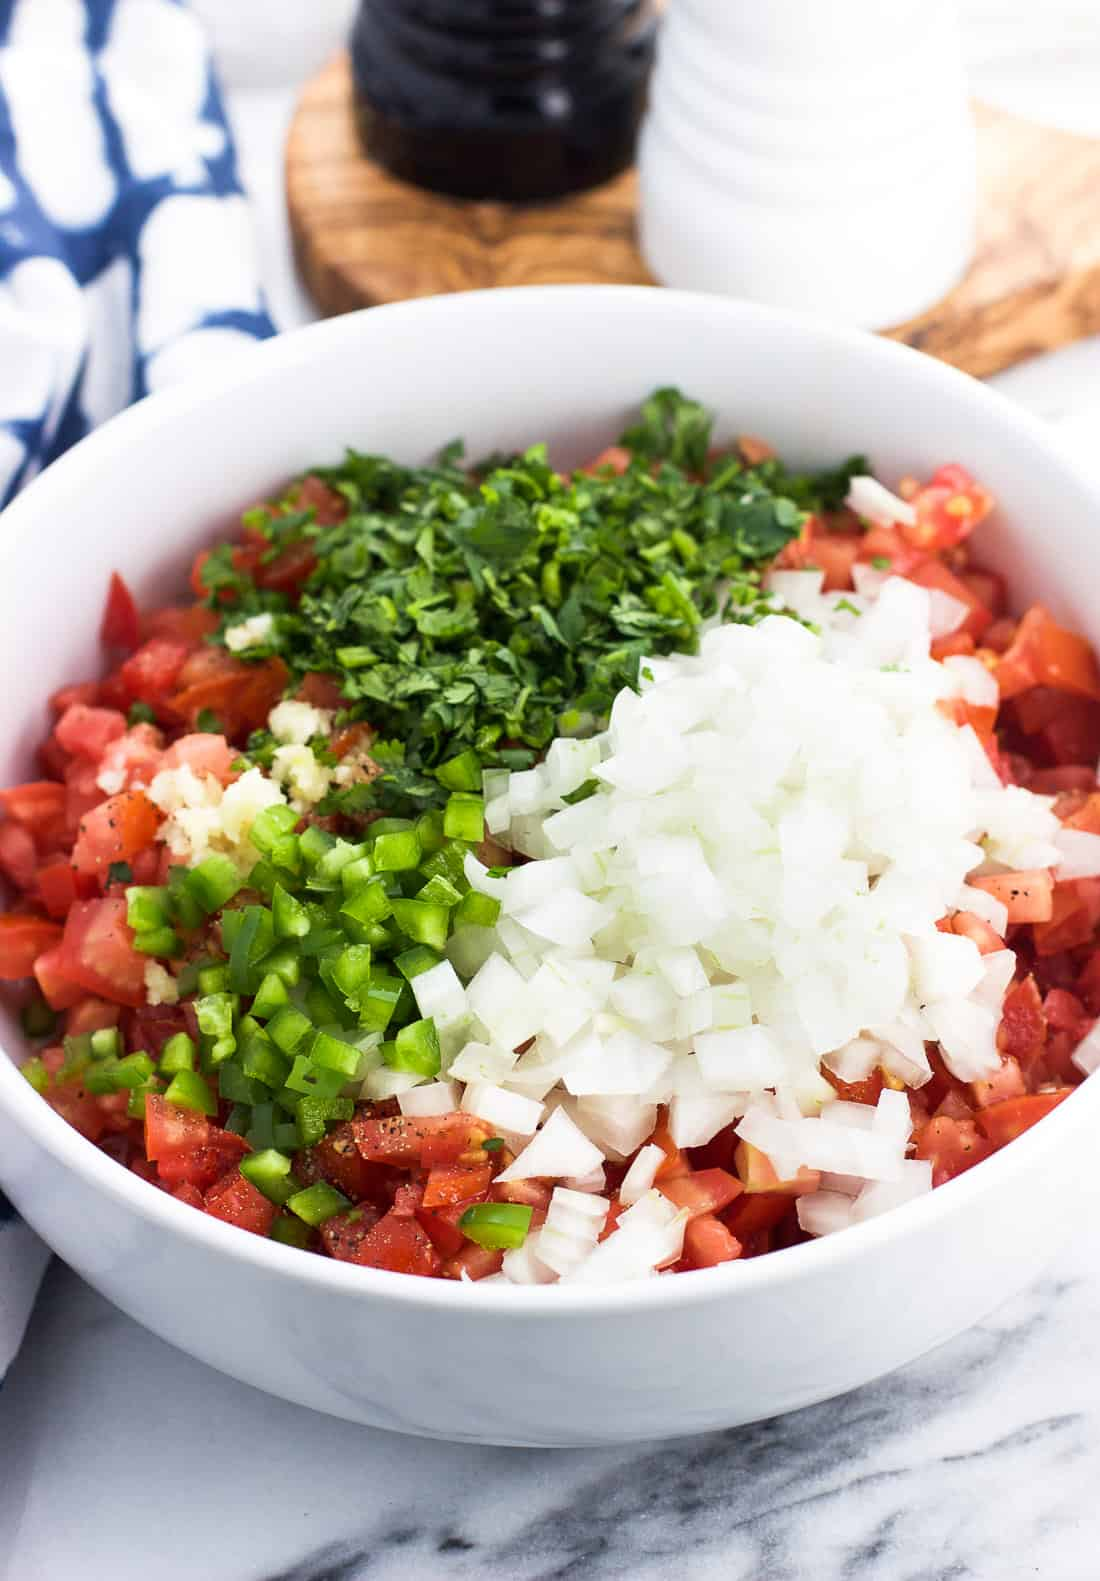 All pico de gallo ingredients in a bowl ready to be mixed together.